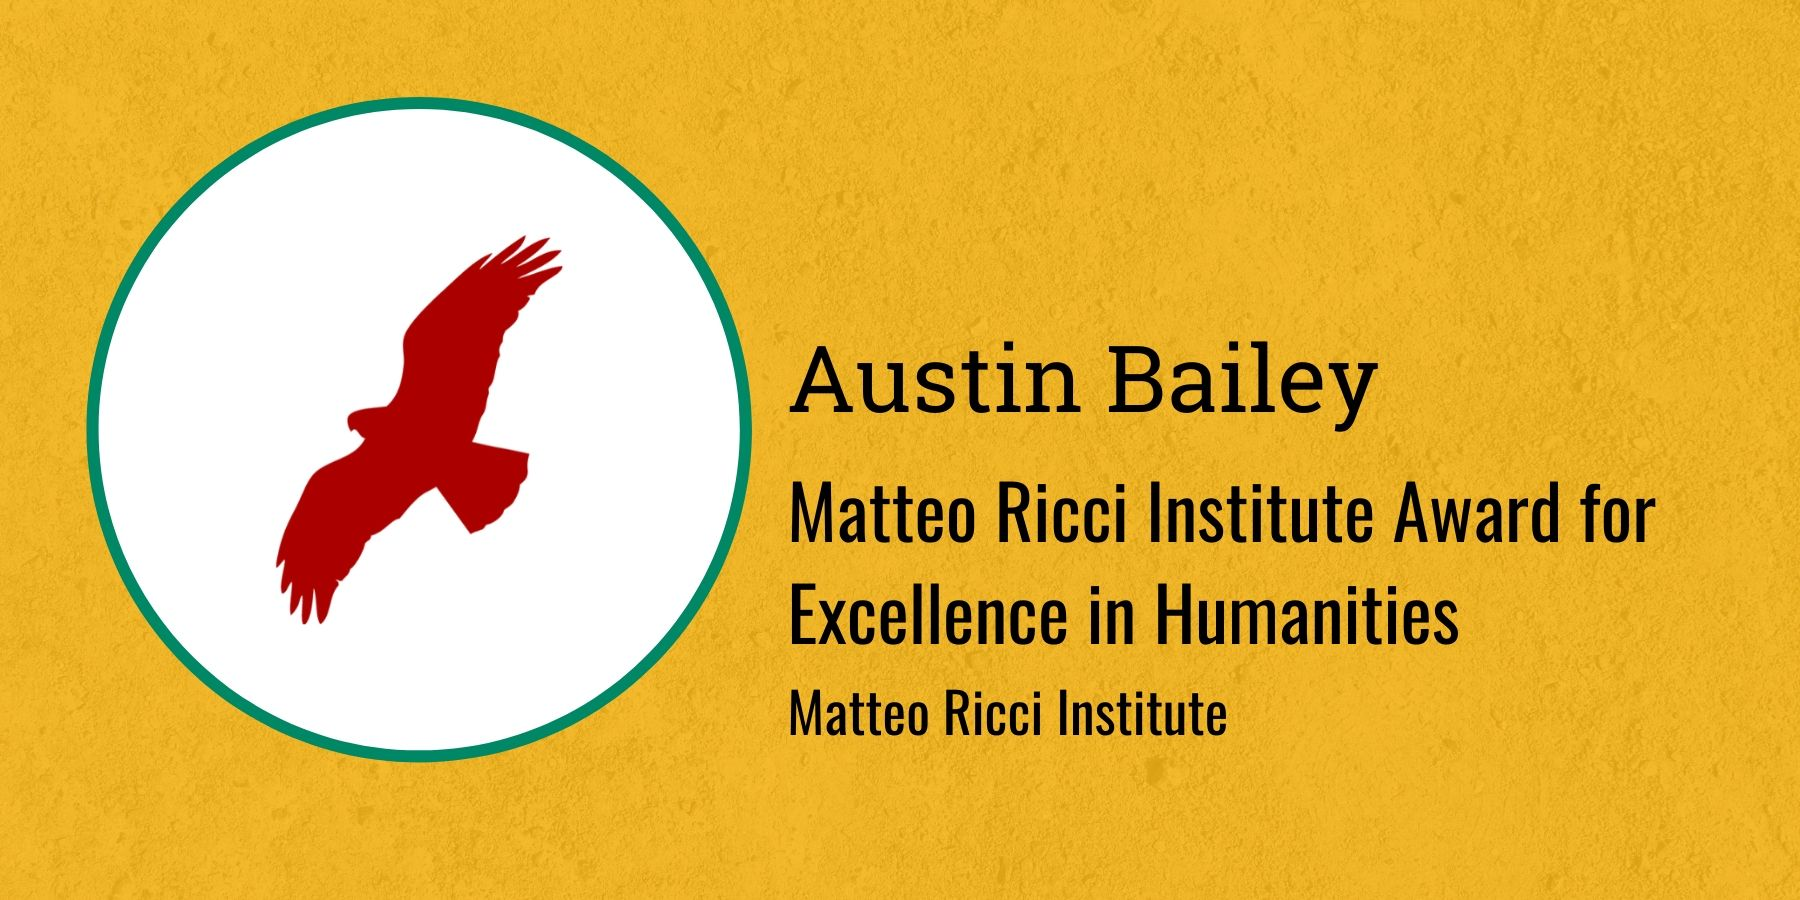 Image of Redhawk and text: Matteo Ricci Institute Award for Excellence in Humanities